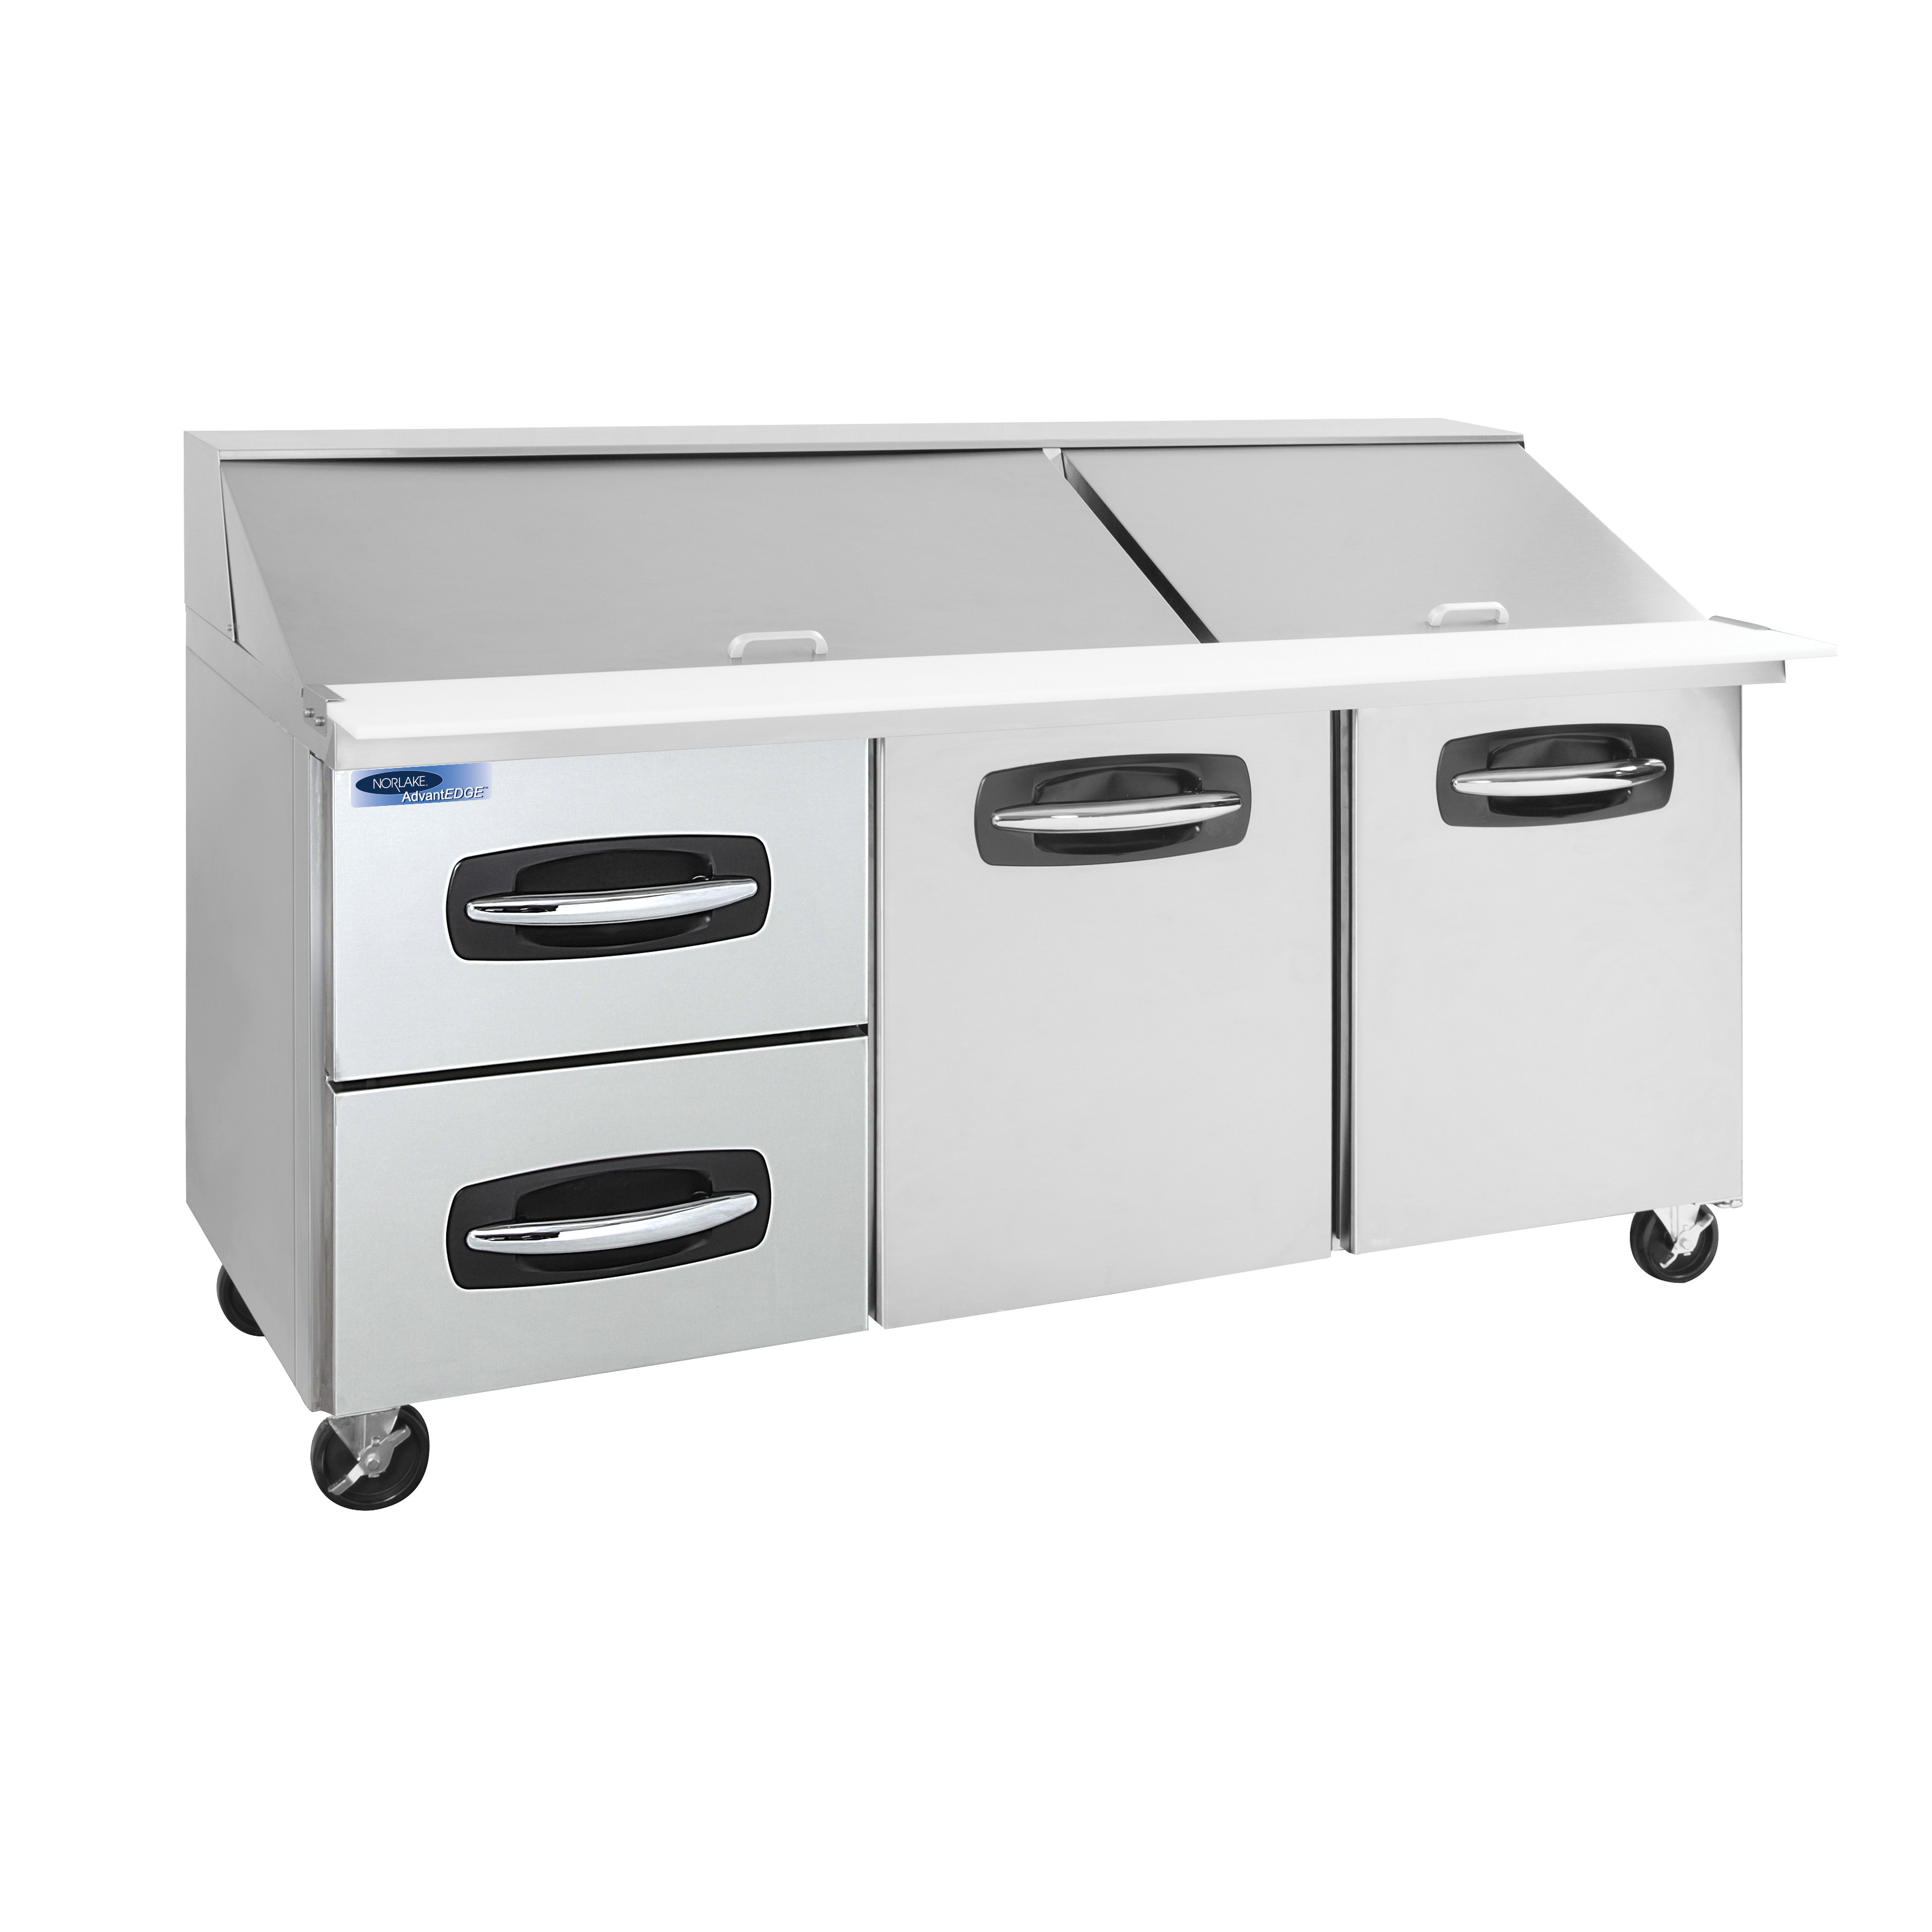 Nor-Lake NLSMP72-30A-003B refrigerated counter, mega top sandwich / salad unit